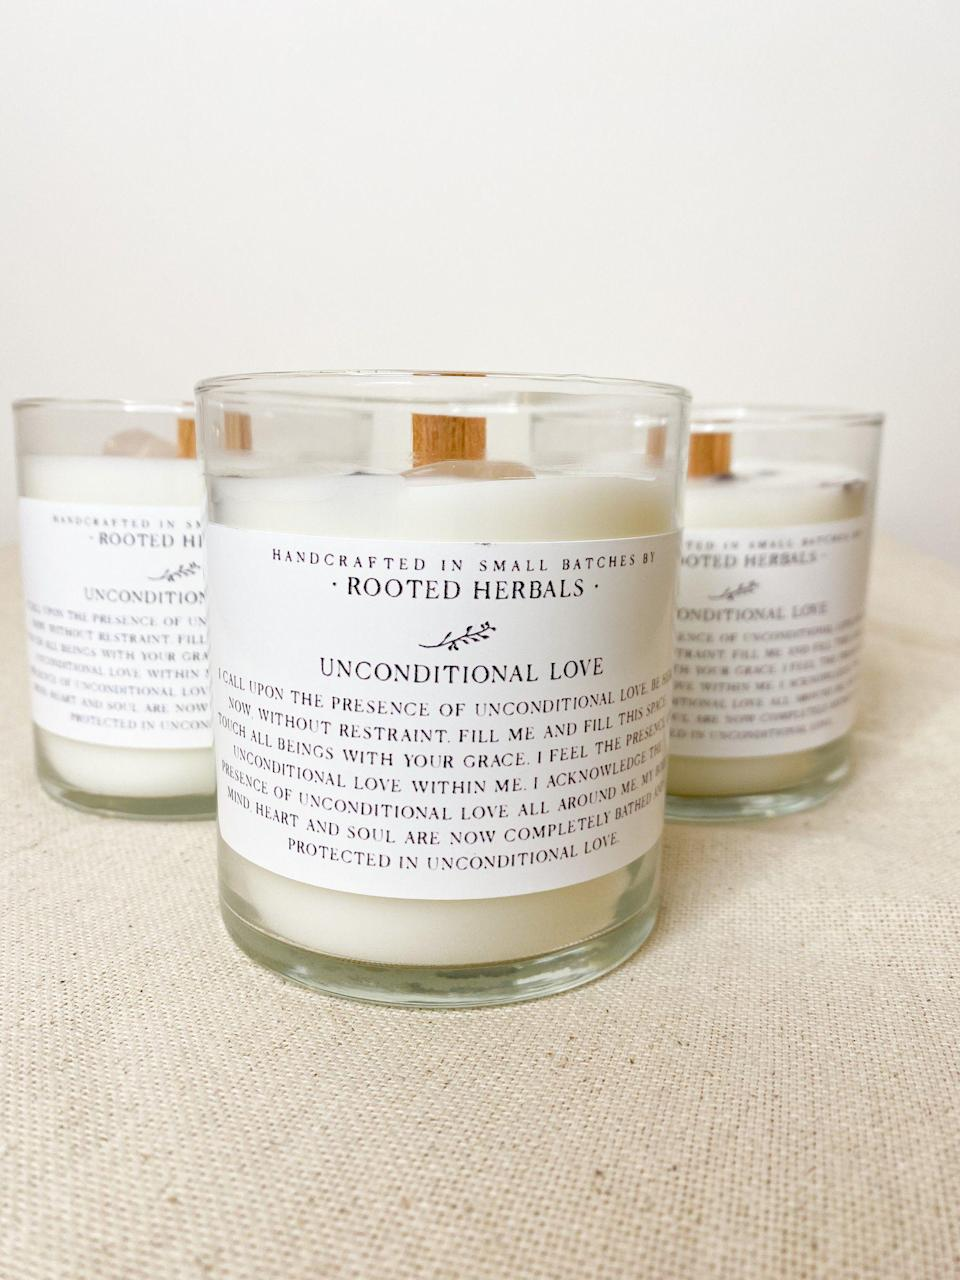 """<p><strong>Rooted Herbals</strong></p><p>damnagedvintage.com</p><p><strong>$28.00</strong></p><p><a href=""""https://damnagedvintage.com/collections/home/products/unconditional-love-candle"""" rel=""""nofollow noopener"""" target=""""_blank"""" data-ylk=""""slk:Shop Now"""" class=""""link rapid-noclick-resp"""">Shop Now</a></p><p>A perfect candle to light as you practice your self-love rituals, it's a romantic option with notes of sandalwood, amber, patchouli, and rose. A rose quartze stone also comes in the candle. </p>"""